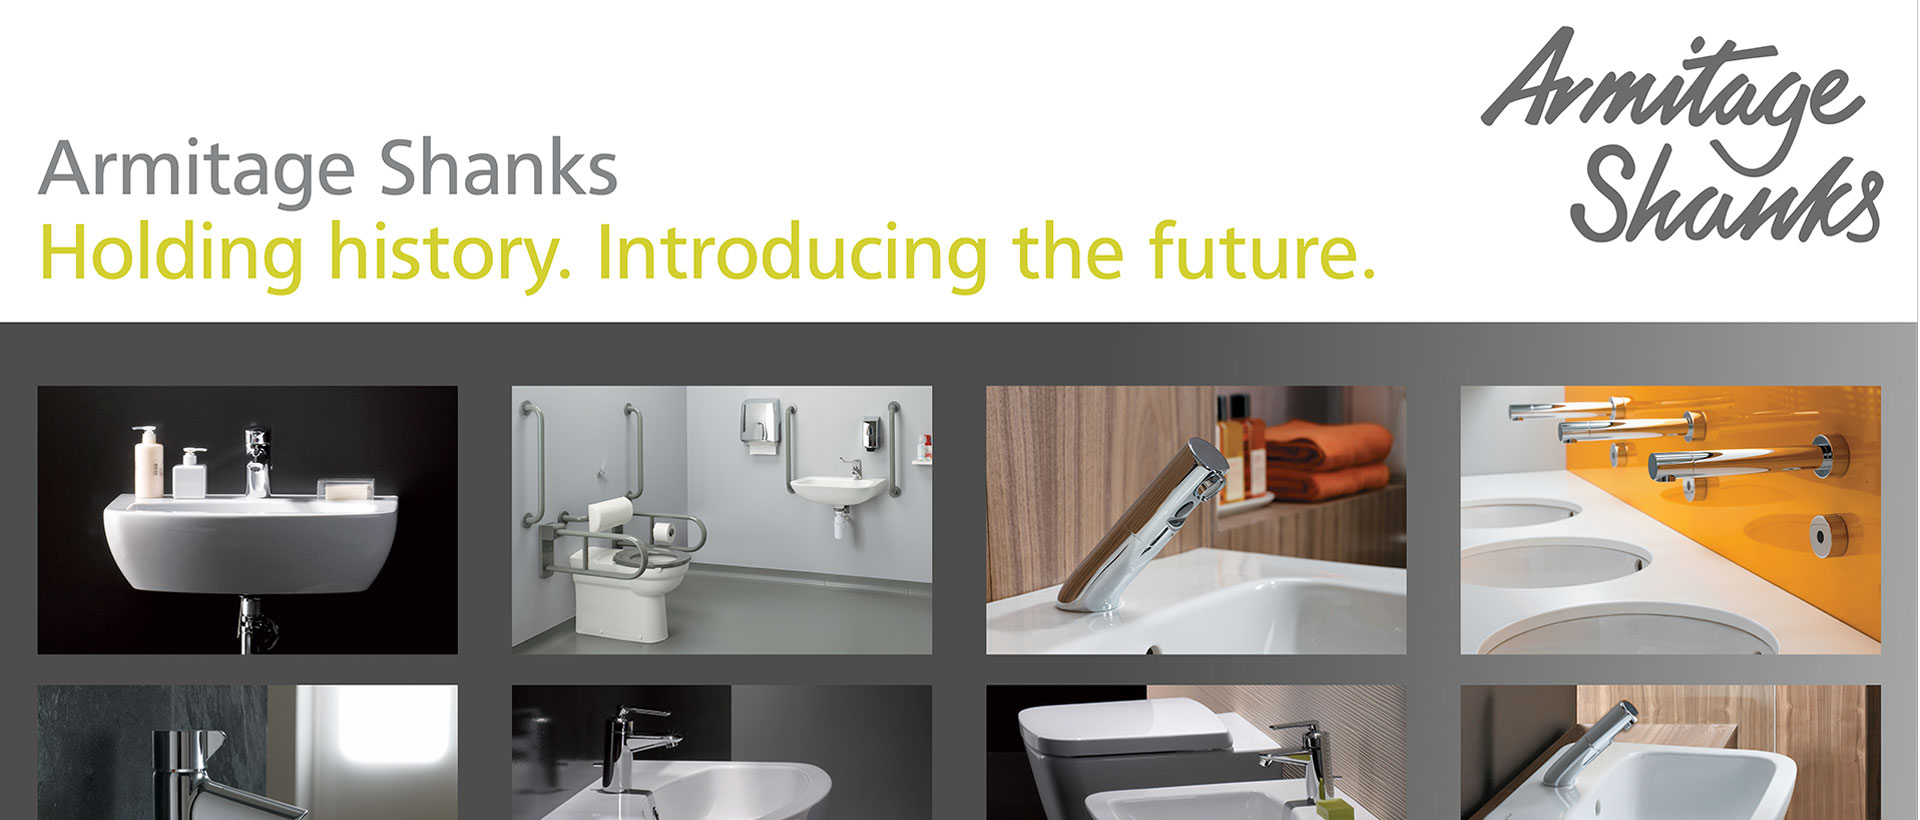 Armitage Shanks | Bathroom Products & Sanitary Ware